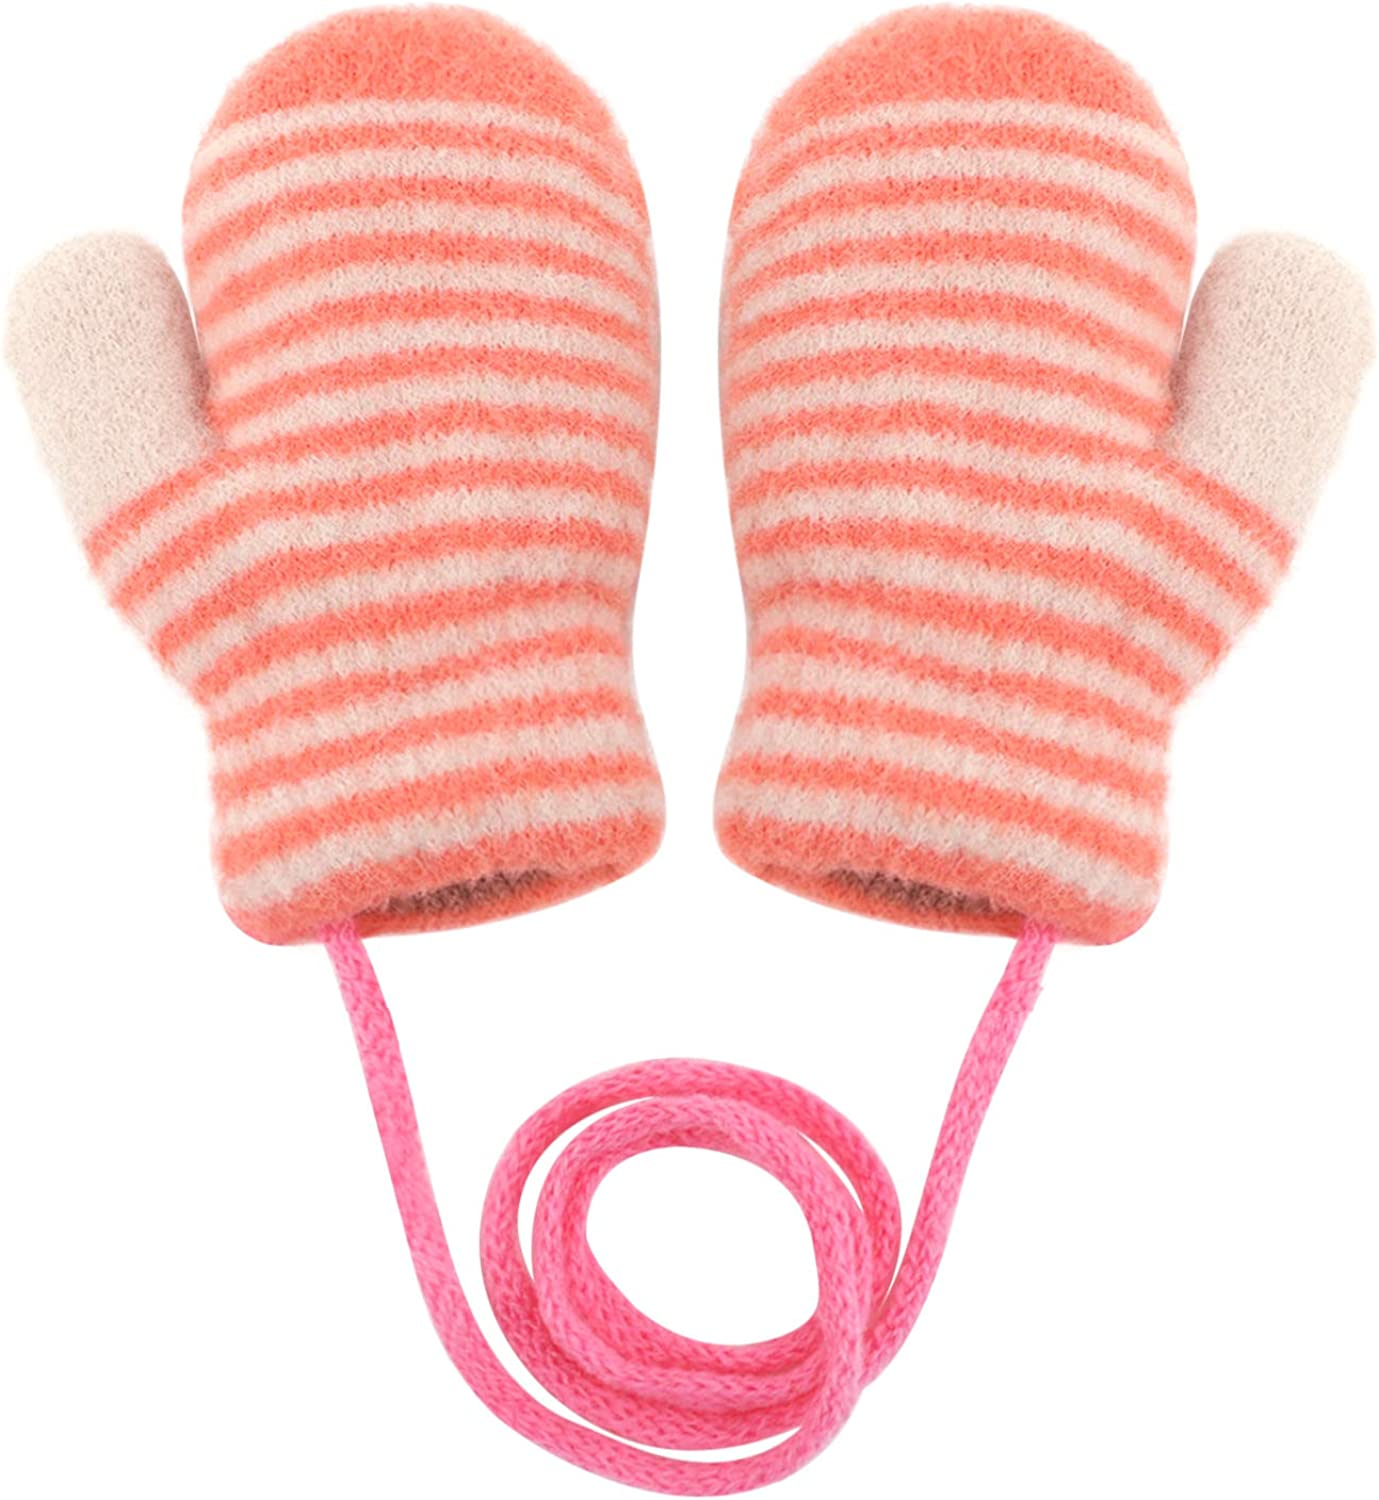 Baby Toddler Cute Cartoon Gloves Winter Warm Thicken Knitted Magic Mittens Gloves Fluffy Full Finger Mittens Fleece Lined Hanging Neck Mittens Hand Warmer Birthday Xmas Gifts for Kids Aged 0-3 Y